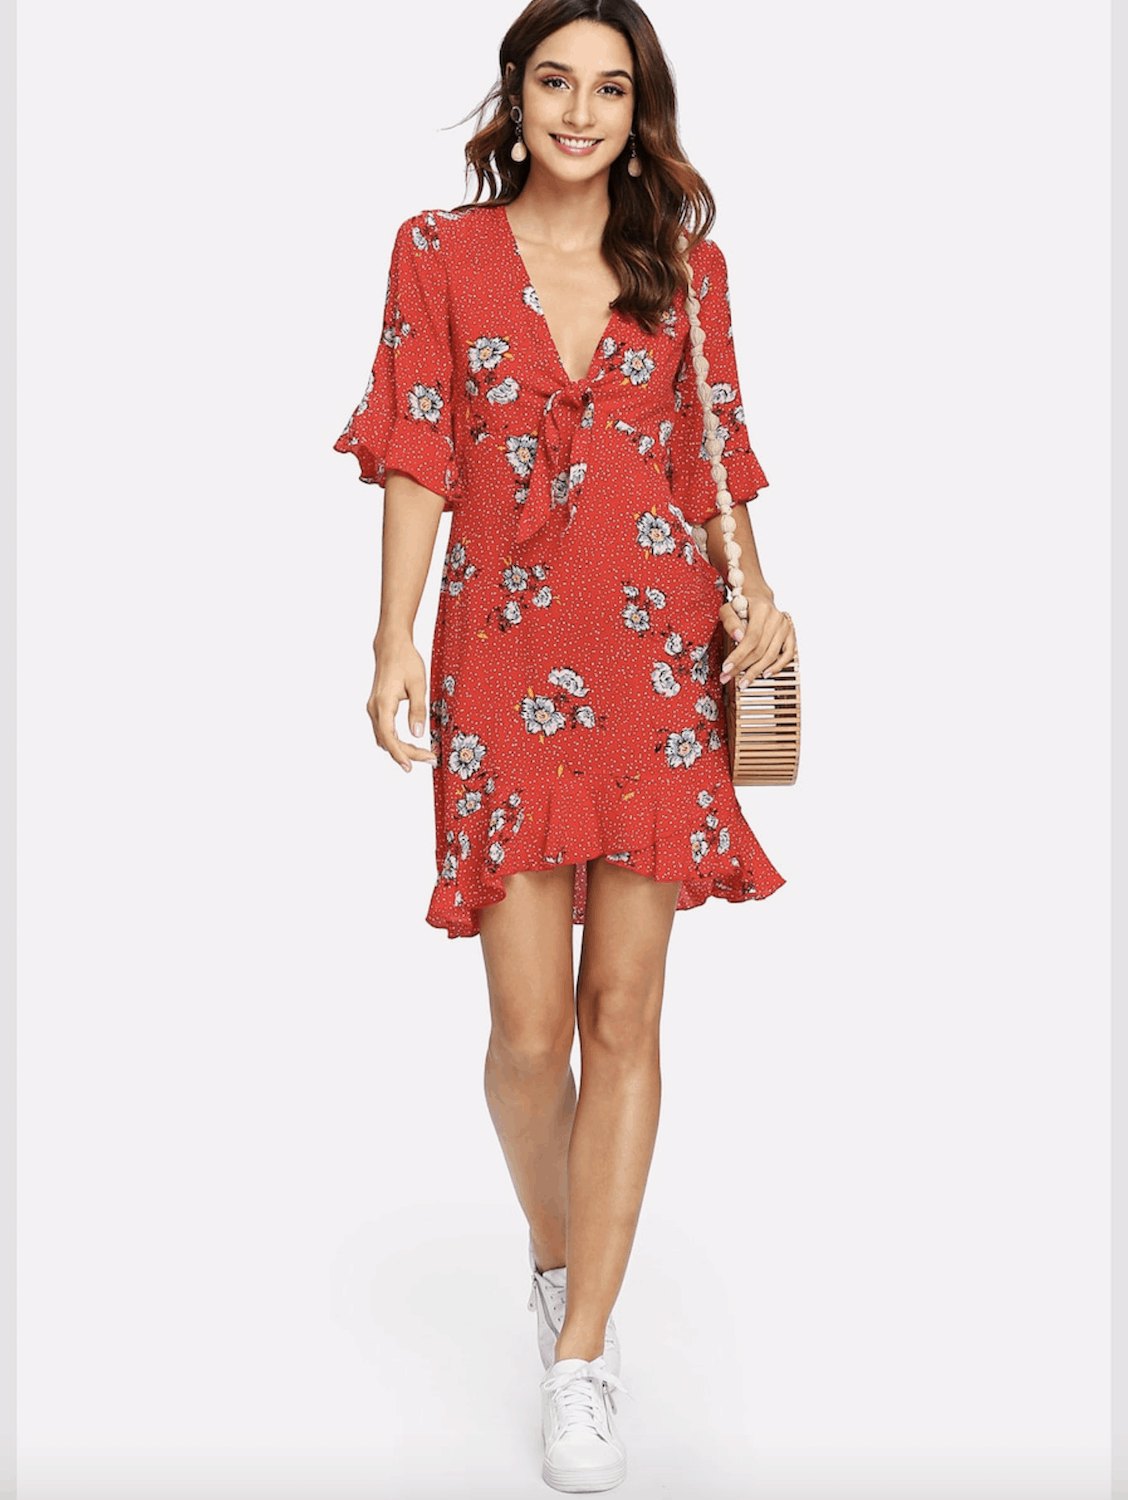 Summer Honeymoon Outfits Red Floral Print Dress